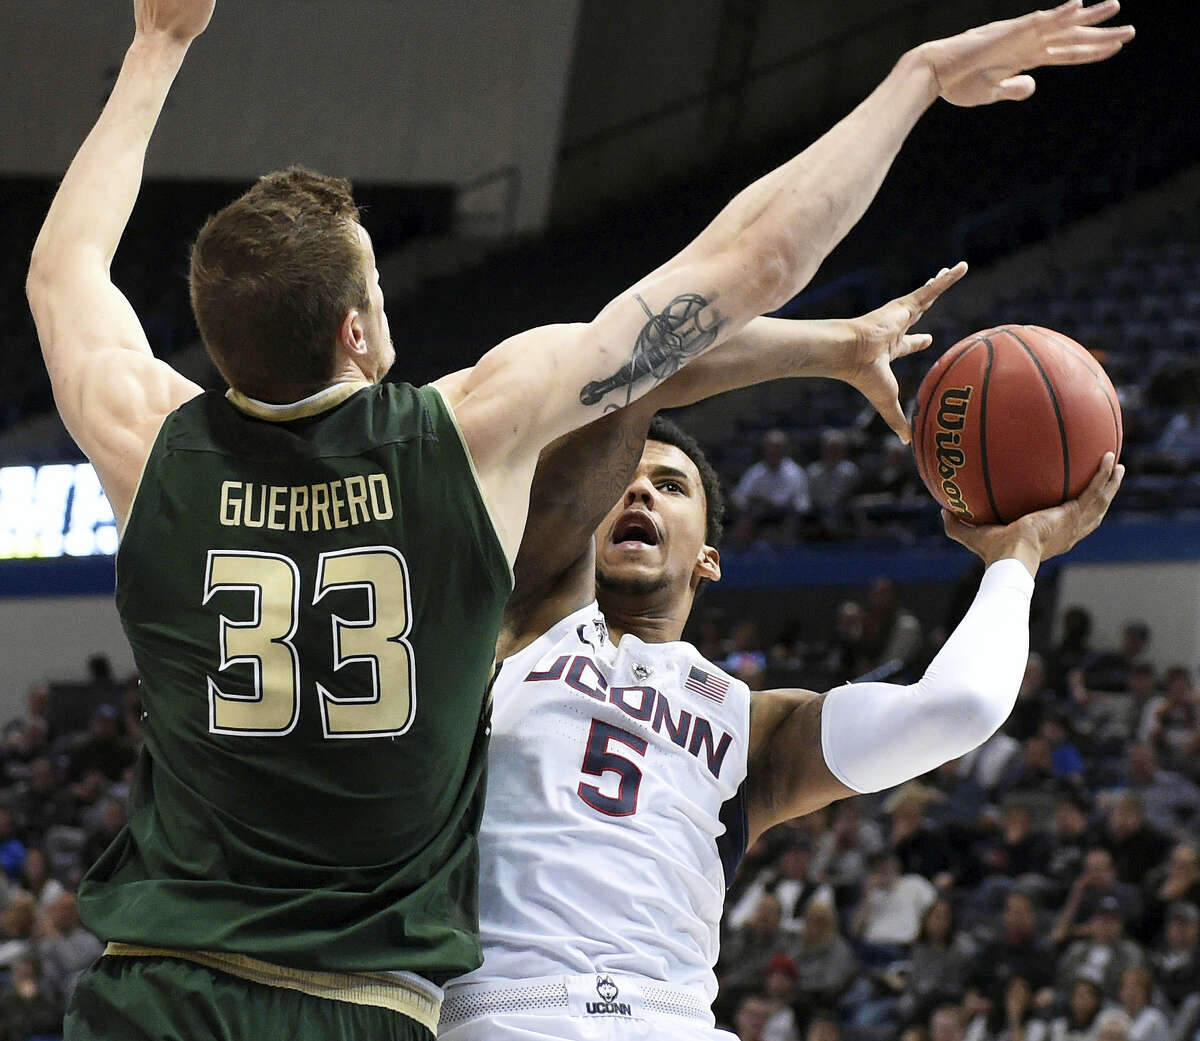 UConn's Vance Jackson is blocked by South Florida's Ruben Guerrero during the first half.